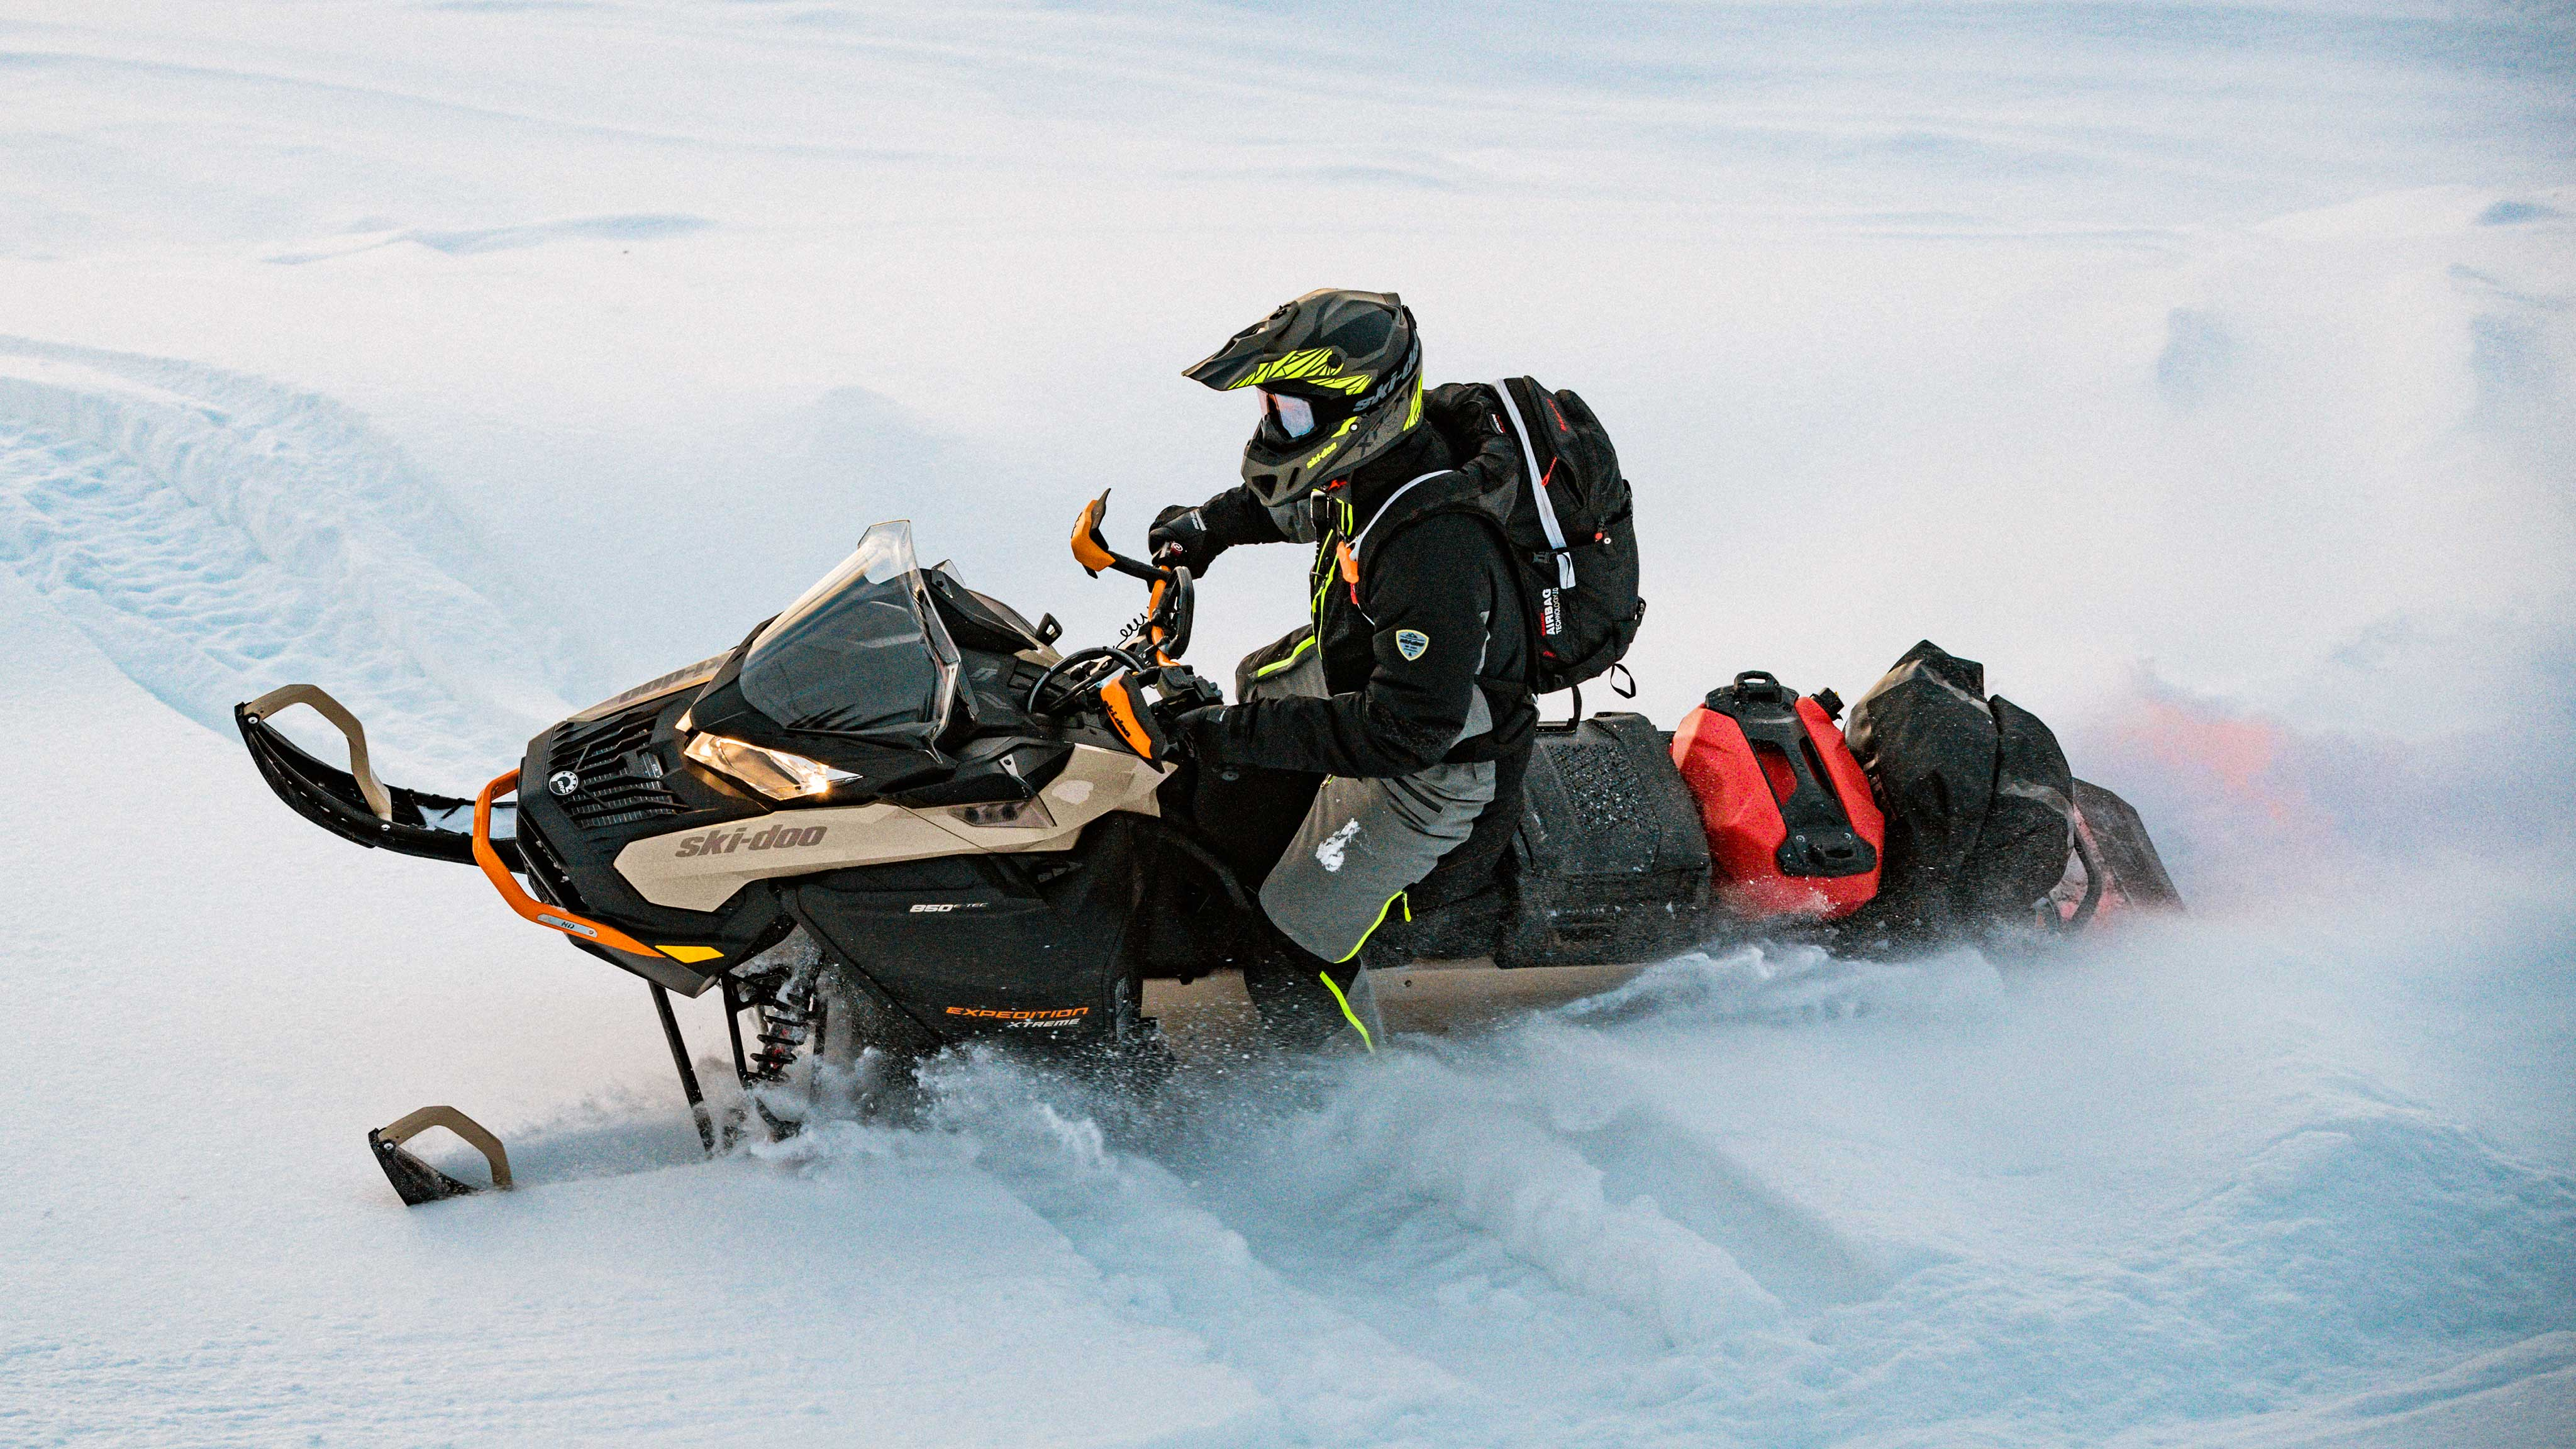 Man driving a Ski-Doo Backcountry with essential accessories